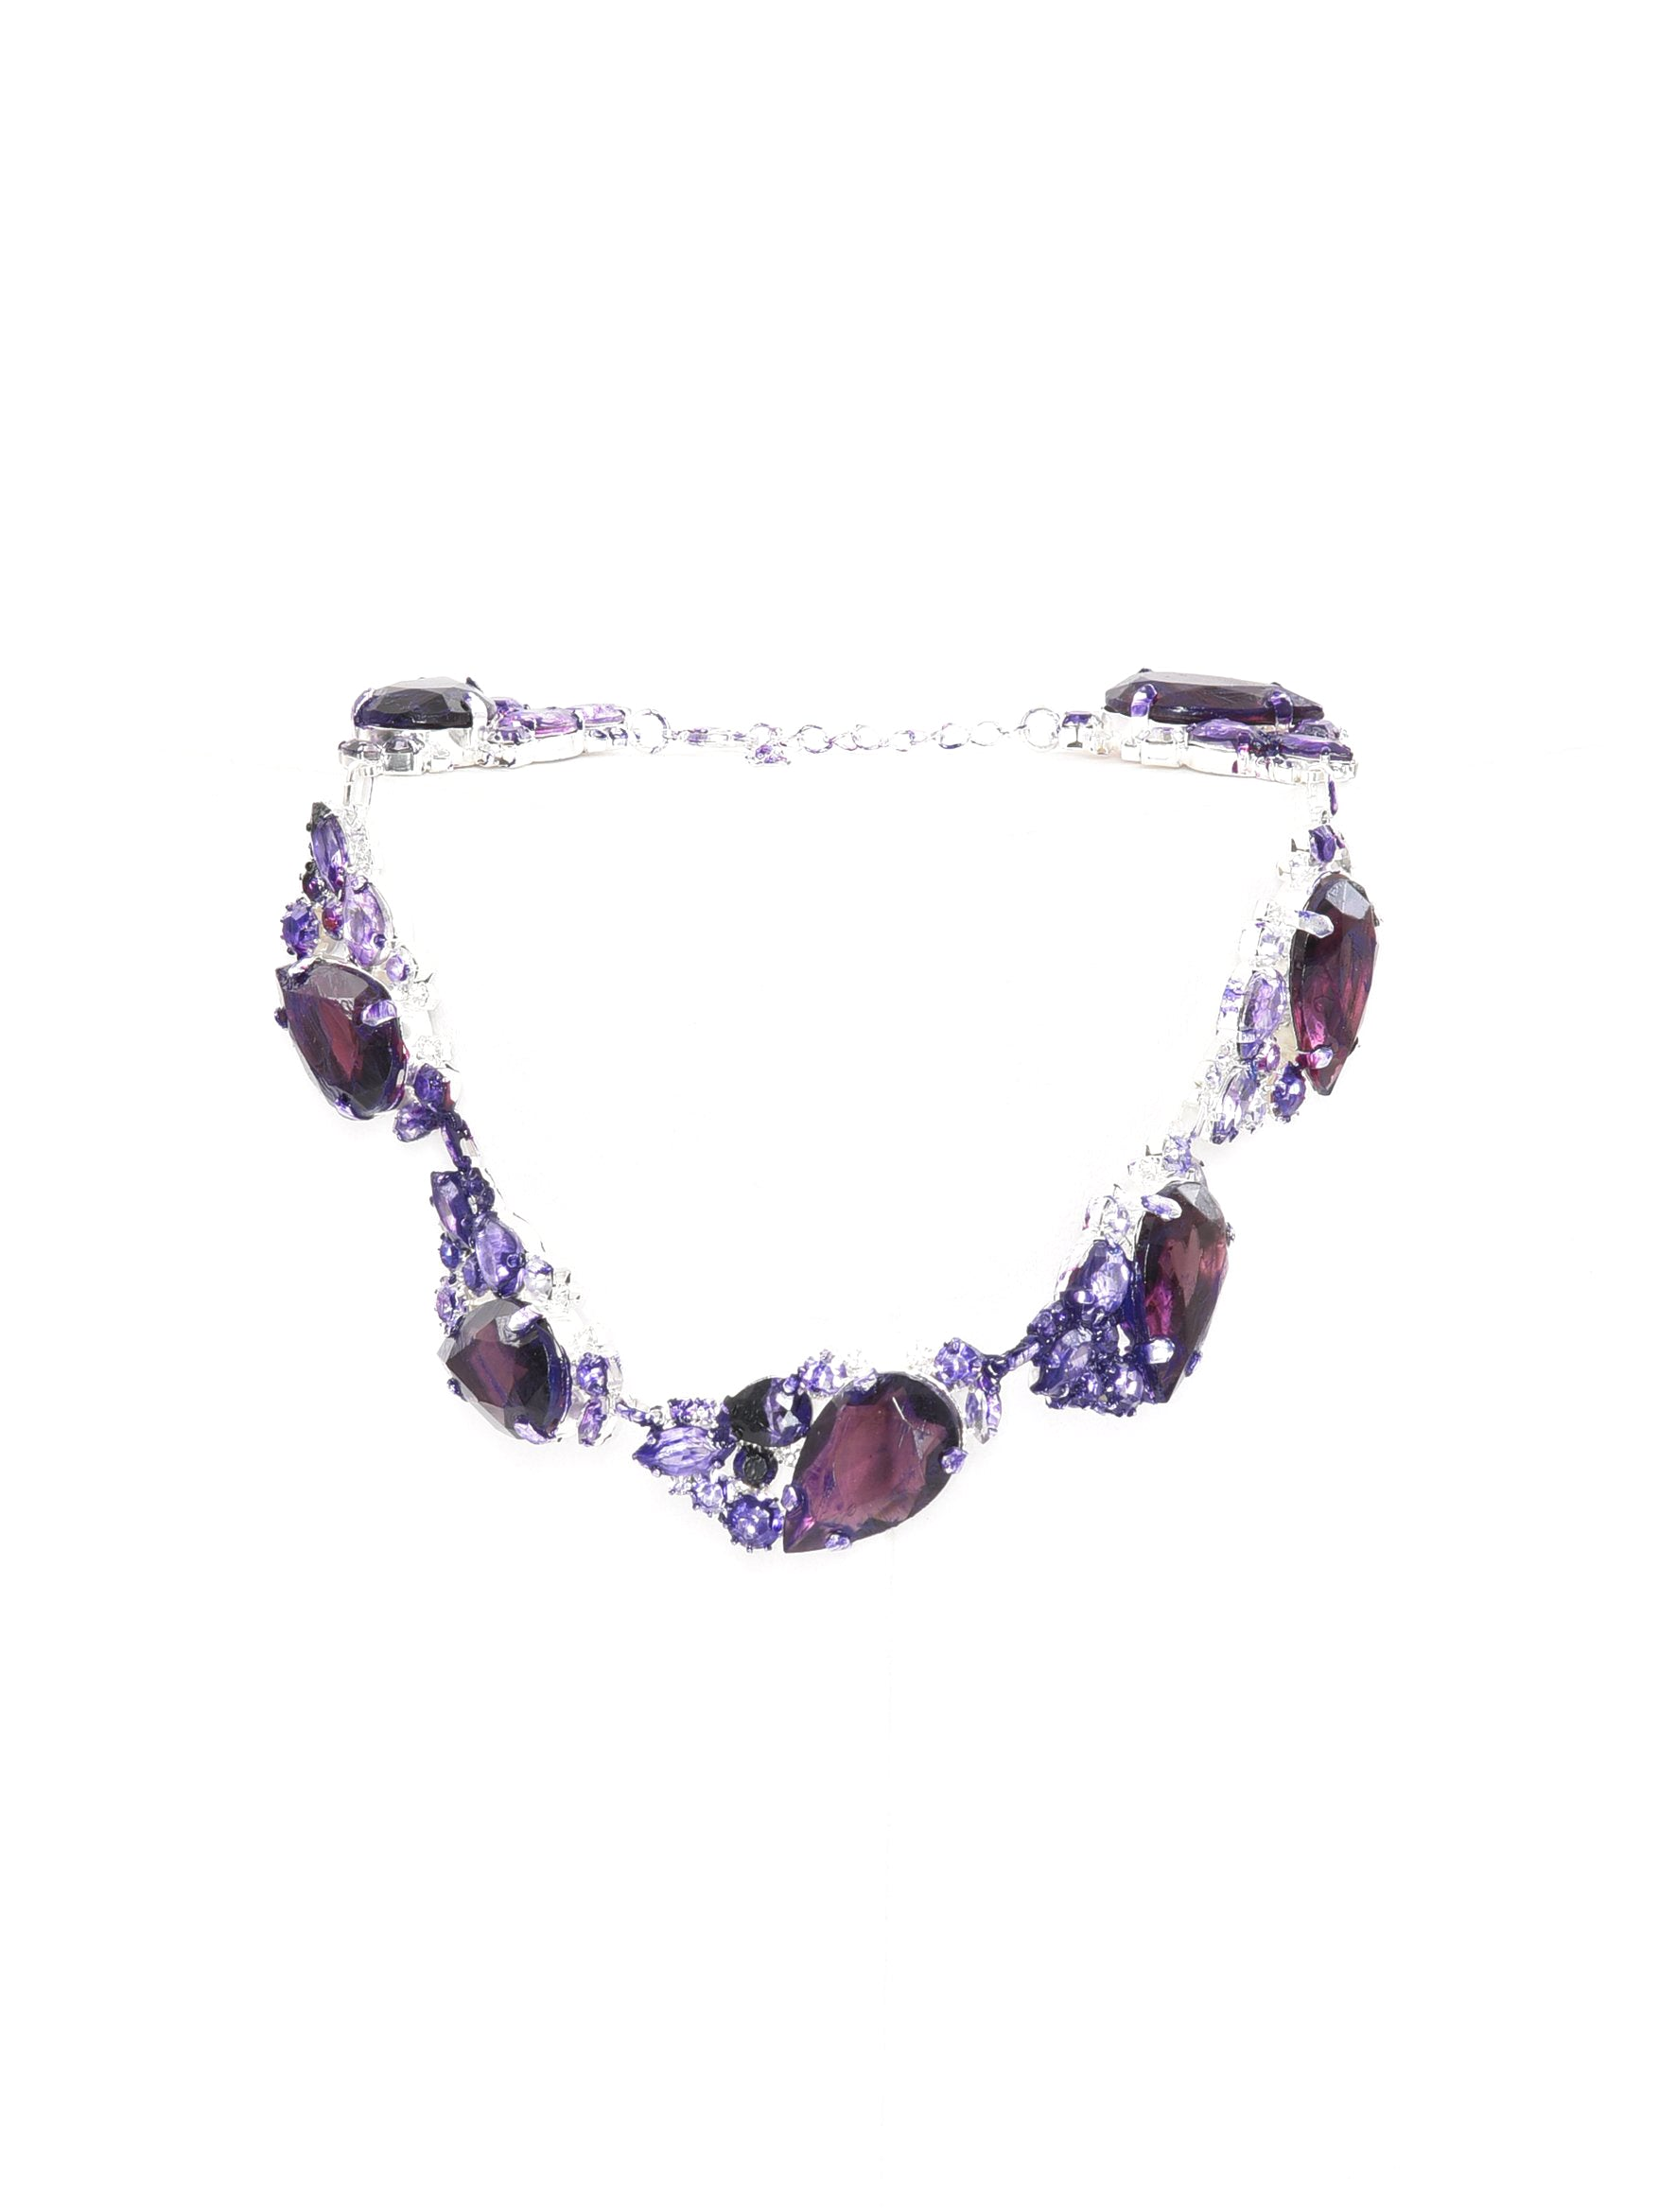 x DOMINIC MYATT Necklace Skew 2